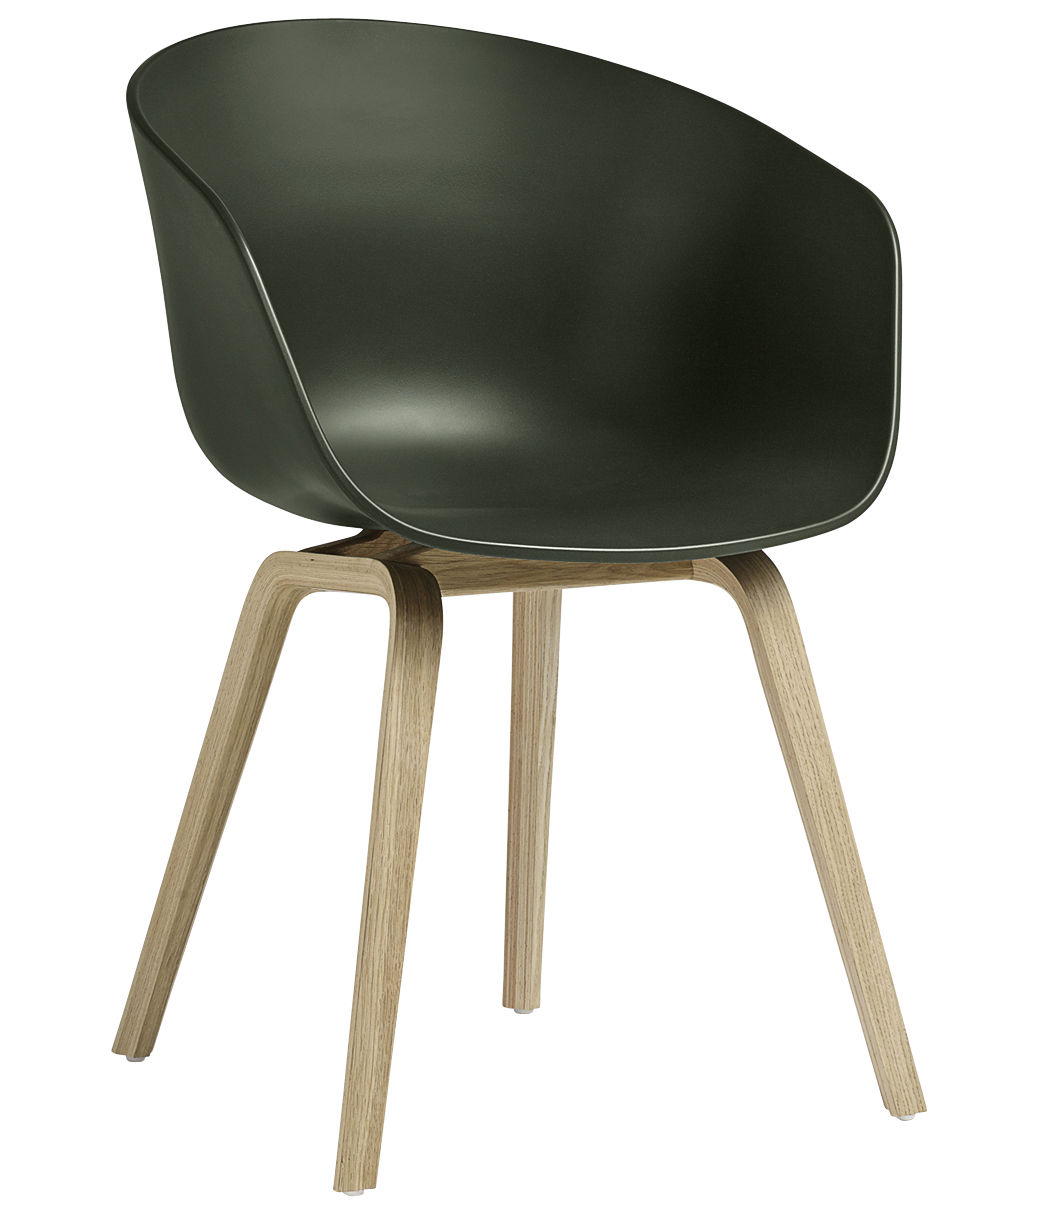 fauteuil about a chair aac22 plastique pieds bois vert pieds bois naturel hay. Black Bedroom Furniture Sets. Home Design Ideas